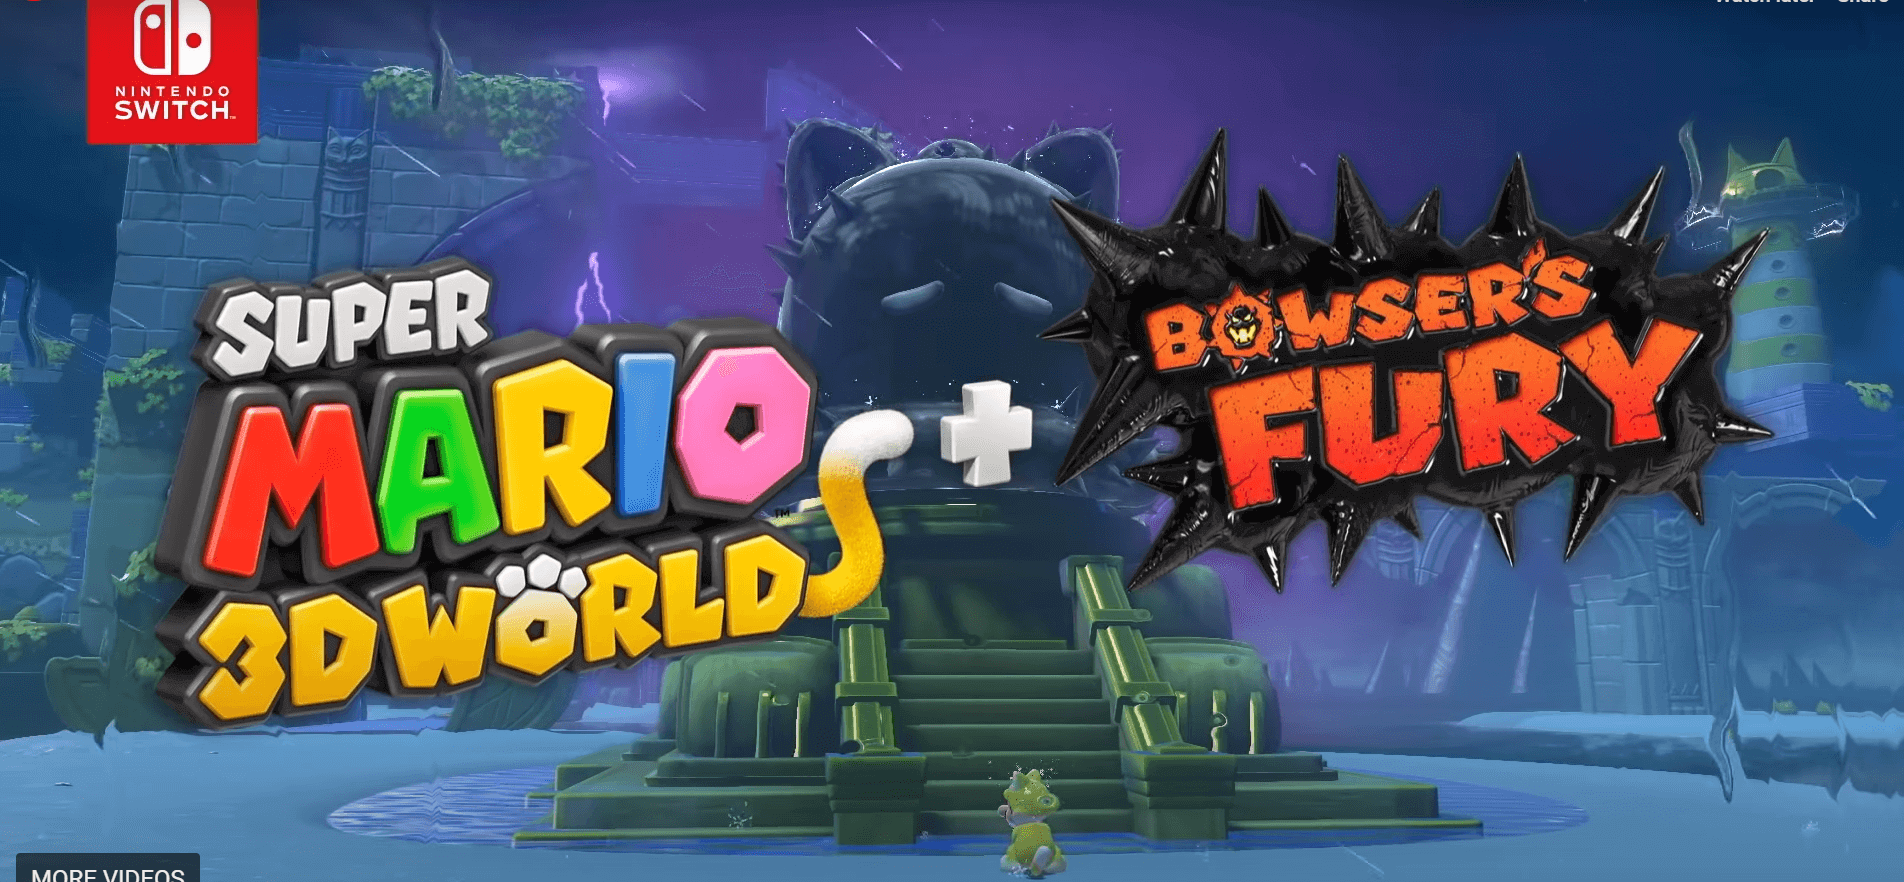 Super Mario 3D World + Bowser's Fury Will Have Online Multiplayer - Switcher.gg